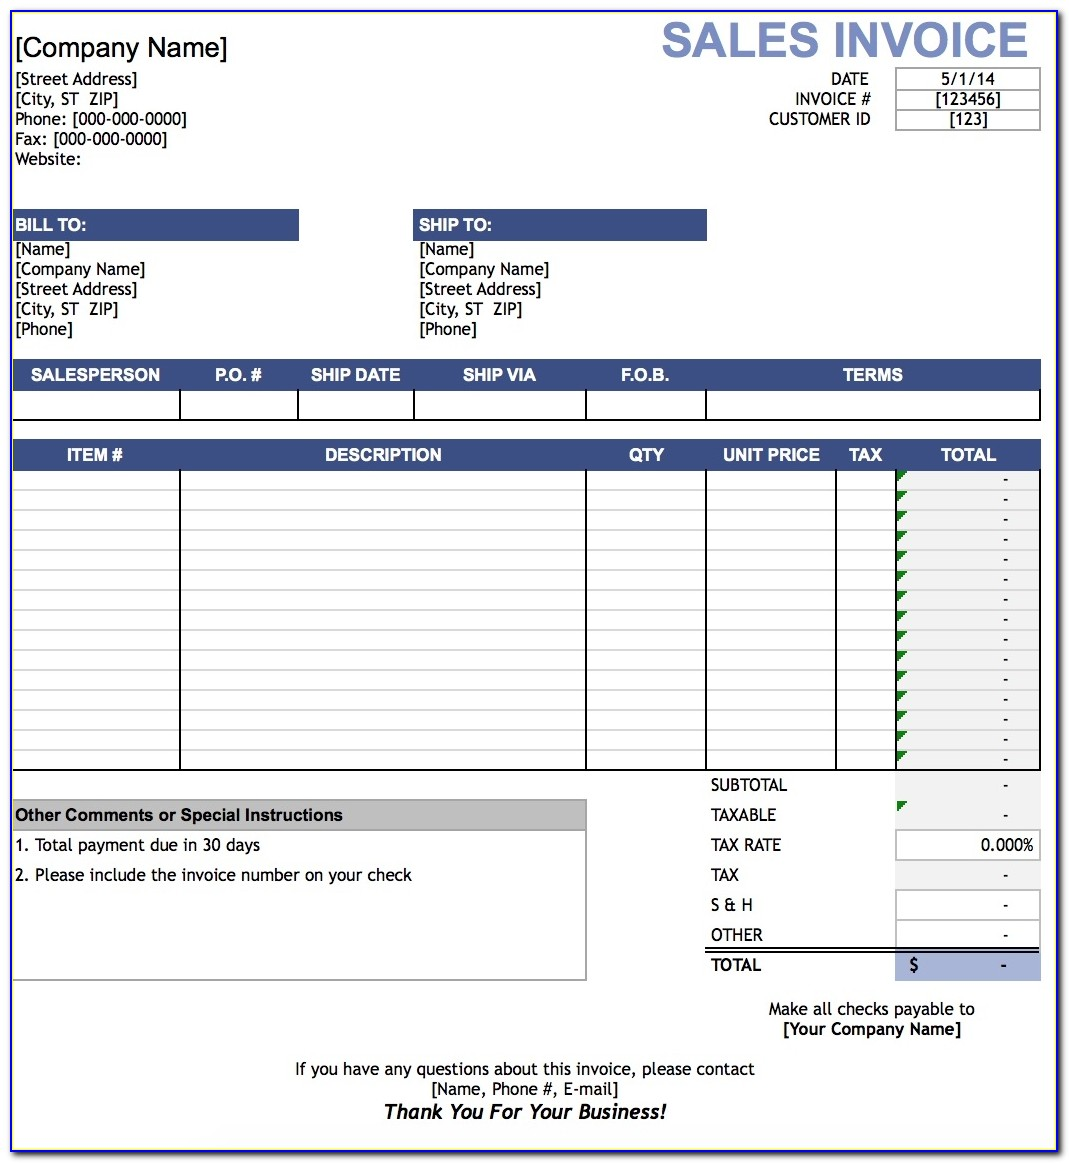 Excel Sales Invoice Template Sales Invoice Template Microsoft Excel Electronic Invoice Template 1042 X 1136